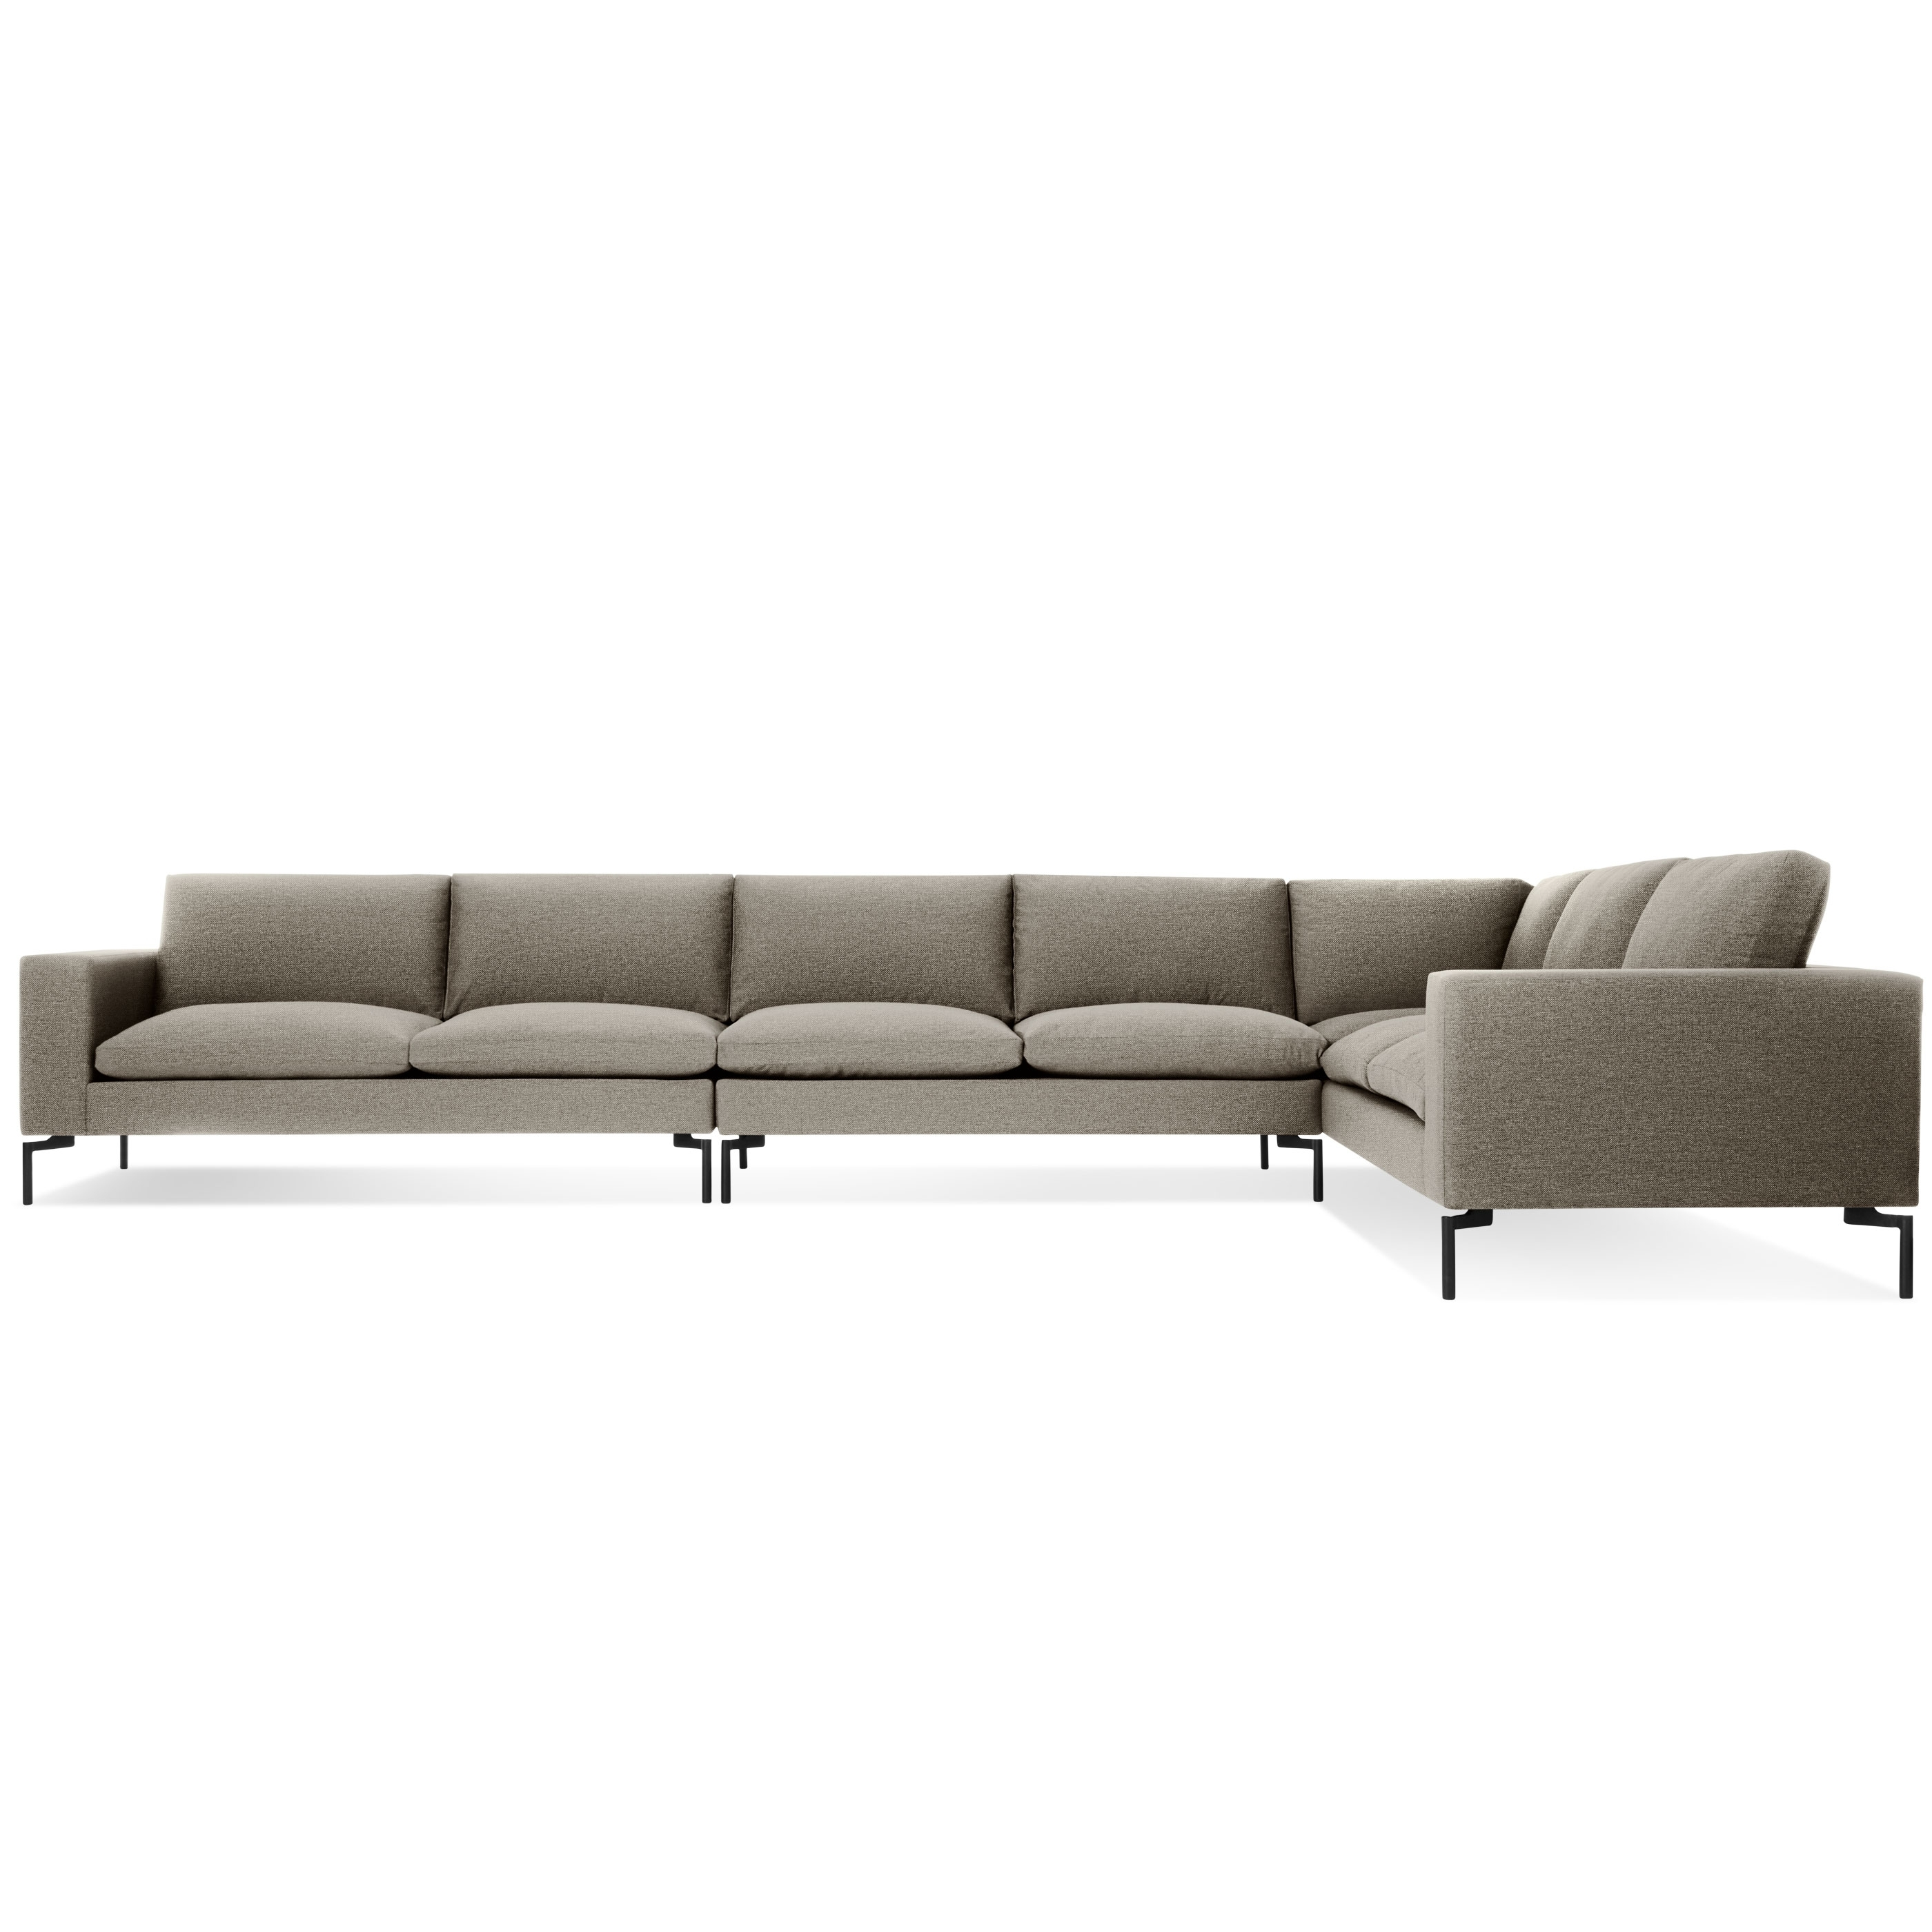 Nova Scotia Sectional Sofas Intended For Well Known New Standard Large Sectional Sofa – Large Sofas (View 19 of 20)